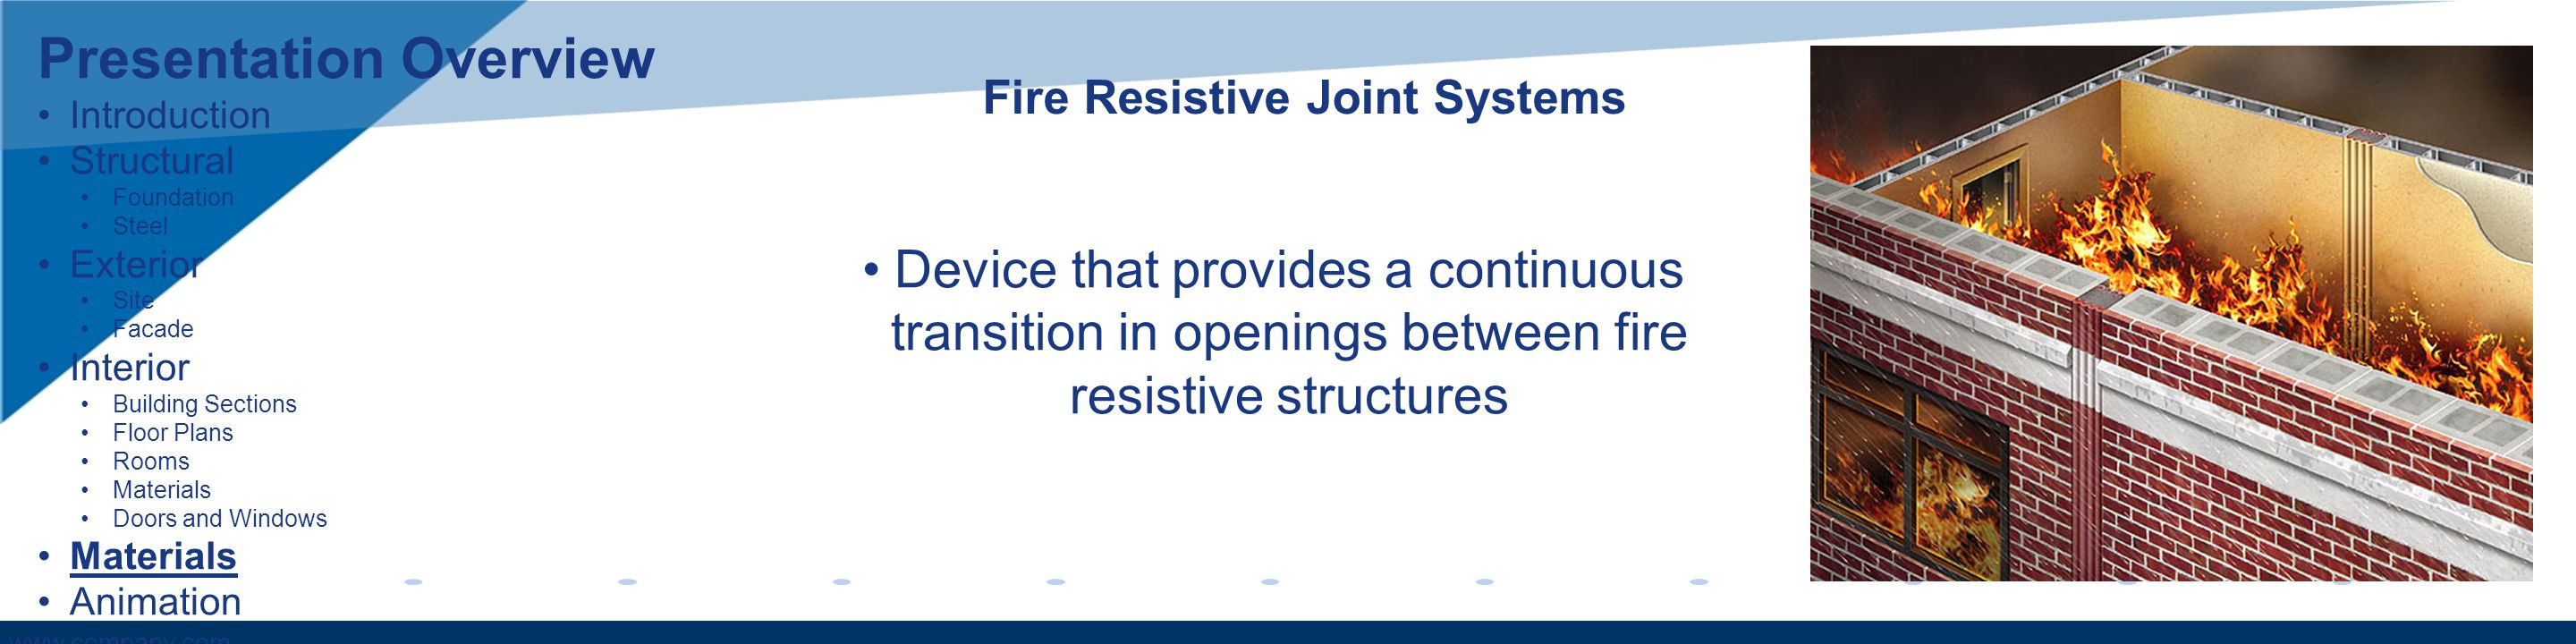 www.company.com Fire Resistive Joint Systems Device that provides a continuous transition in openings between fire resistive structures Presentation O